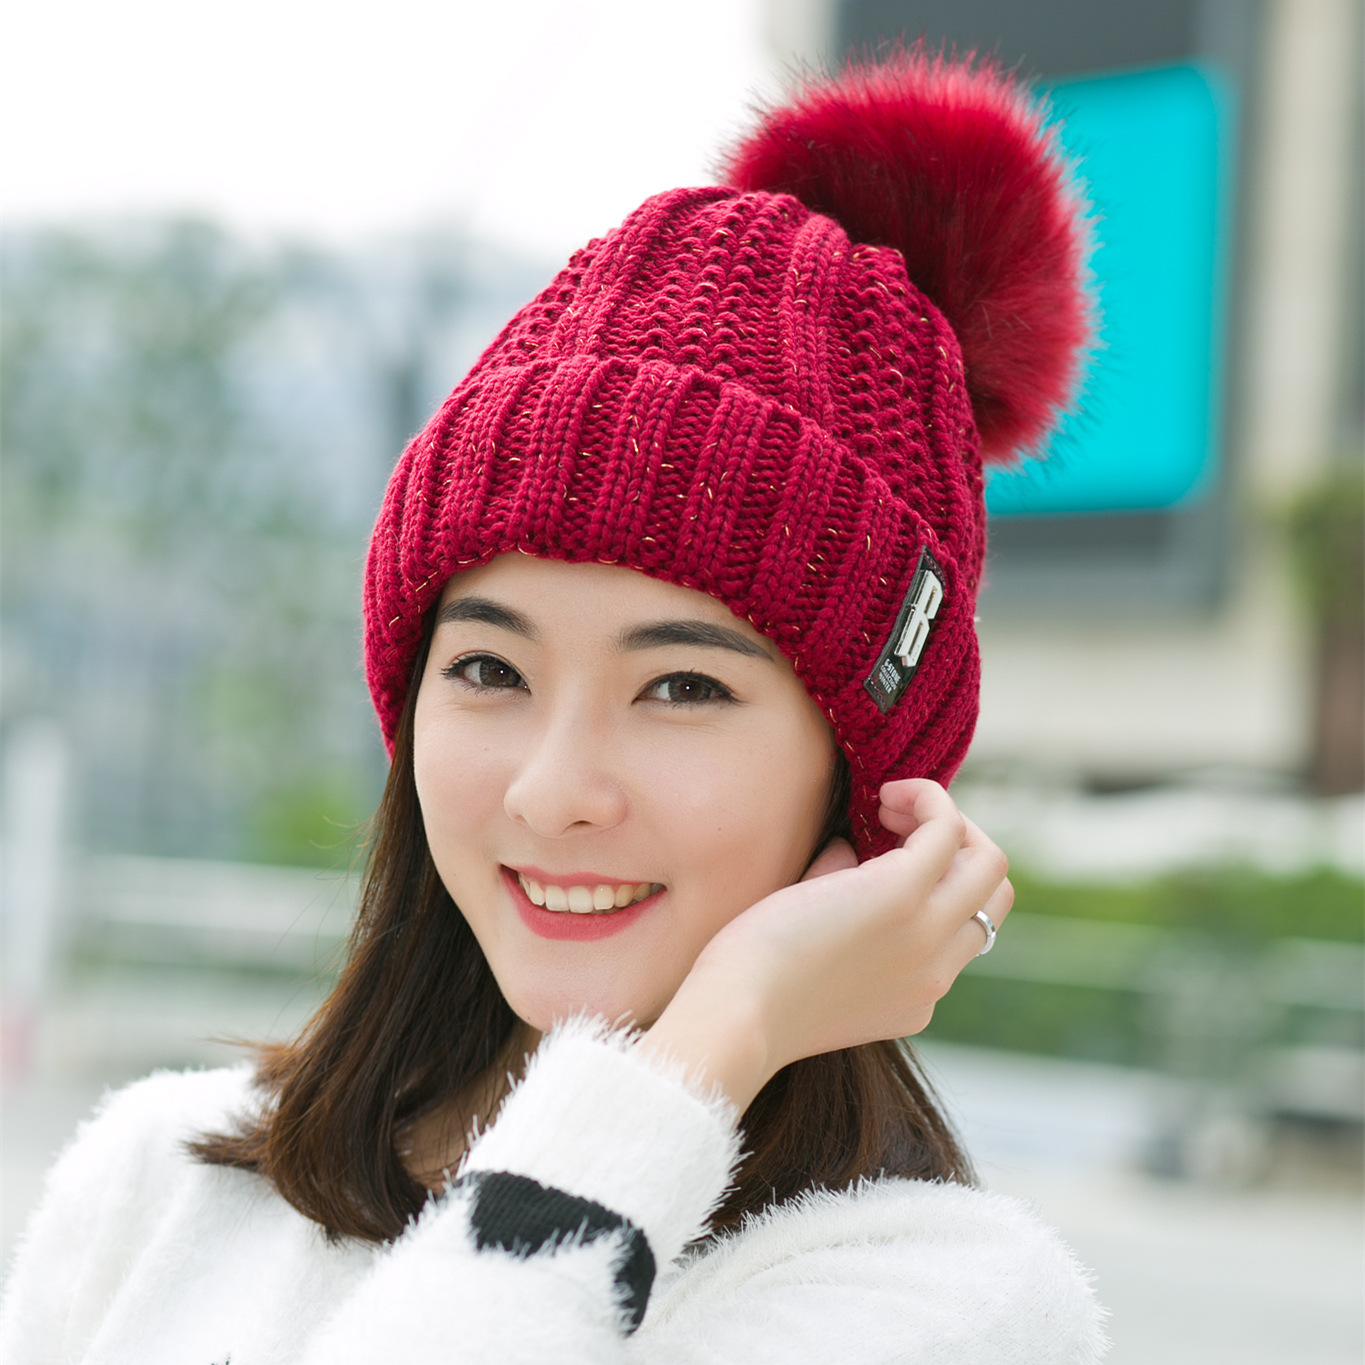 VEITHDIA 2018 New Pom Poms Winter Hat for Women Fashion Solid Warm Hats Knitted   Beanies   Cap Brand Thick Female Cap Wholesale